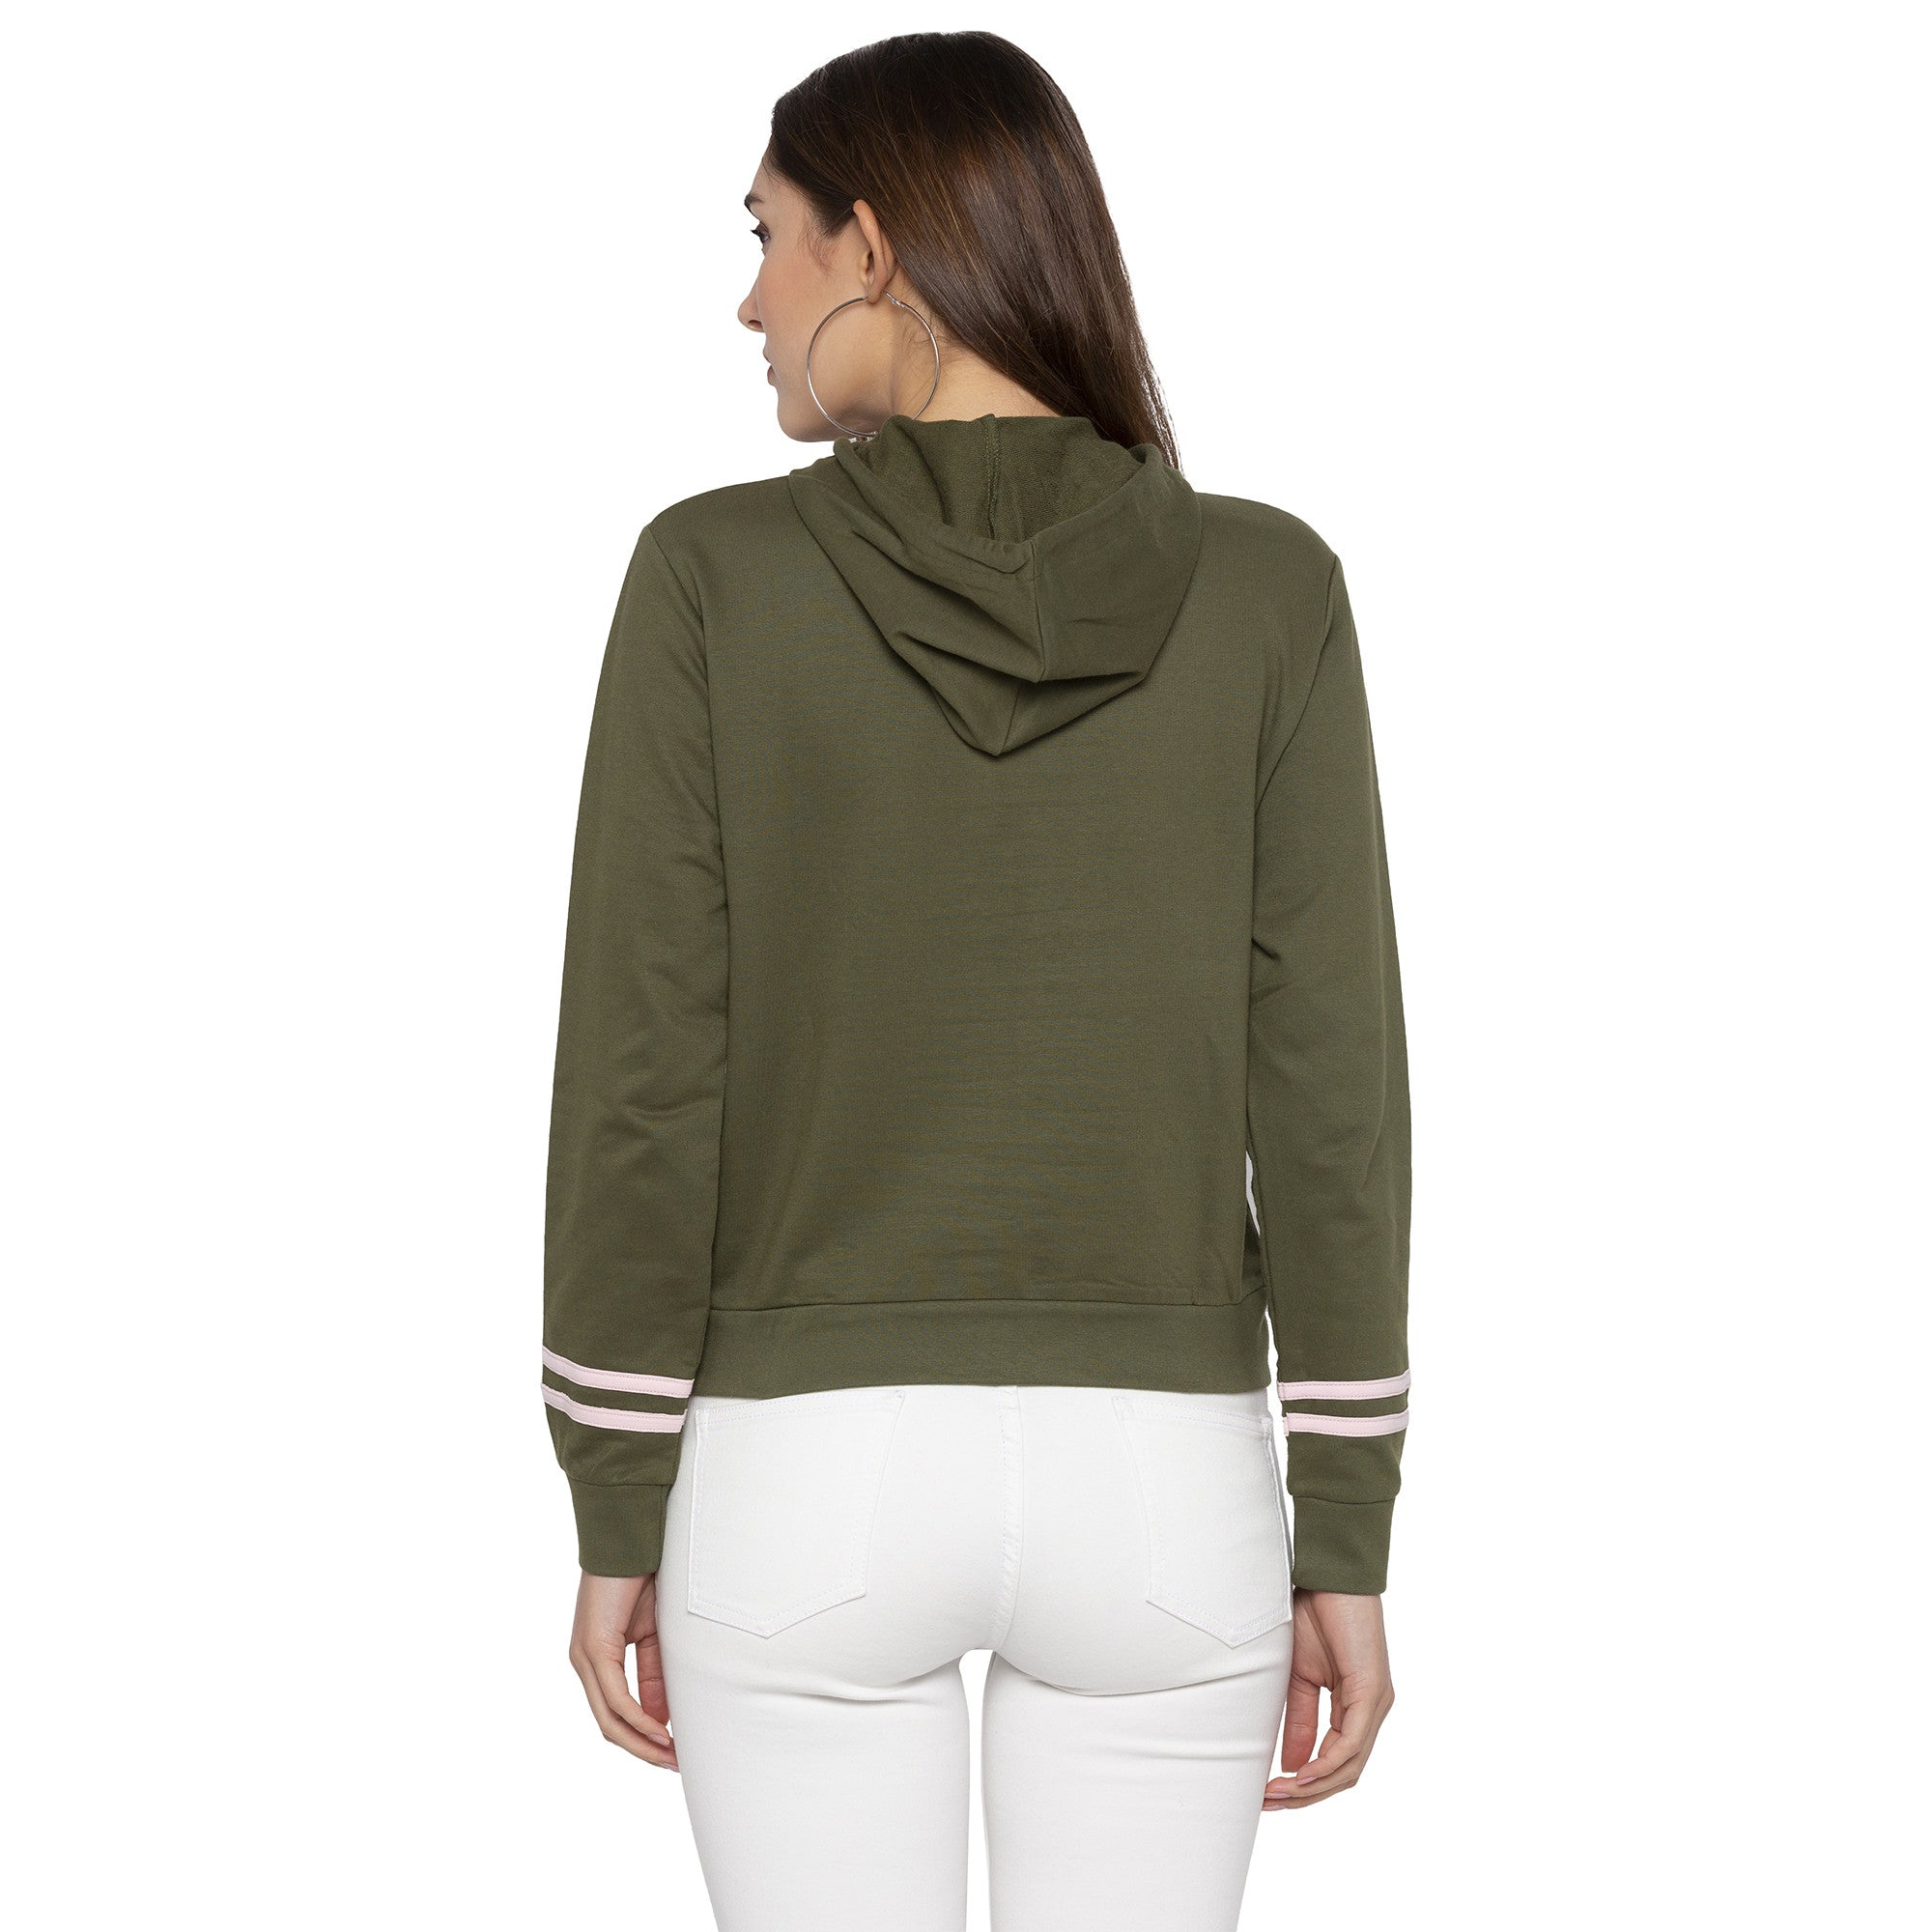 Casual Olive Color Solid Hooded Sweatshirt-3